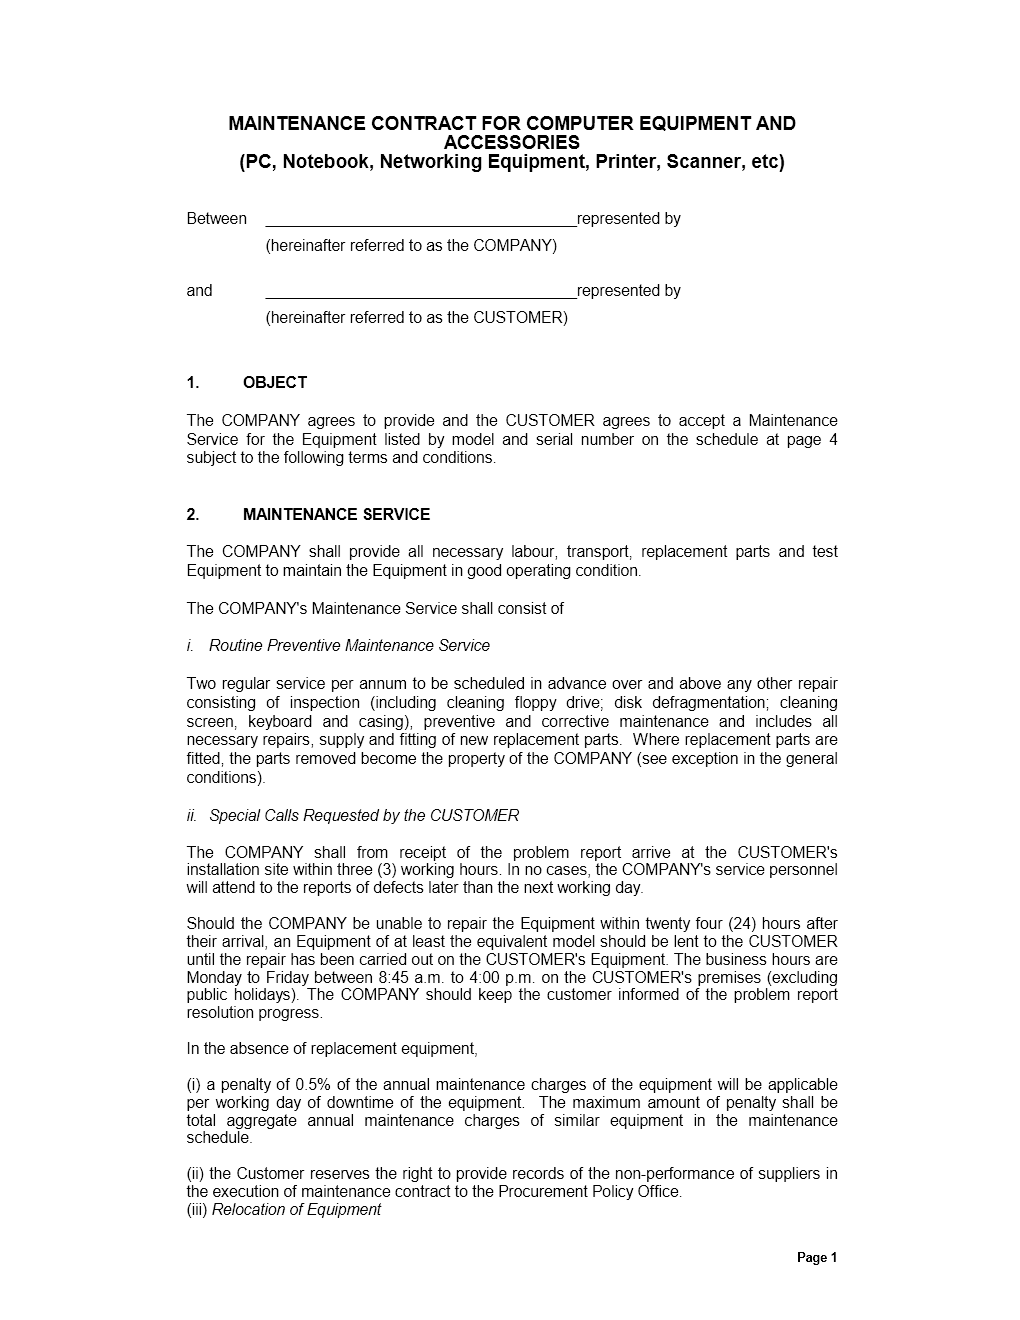 consulting proposal template u business agreementsample agreement form templatepng consulting it consultant contract template agreementsample agreement form - Maintenance Service Contract Sample